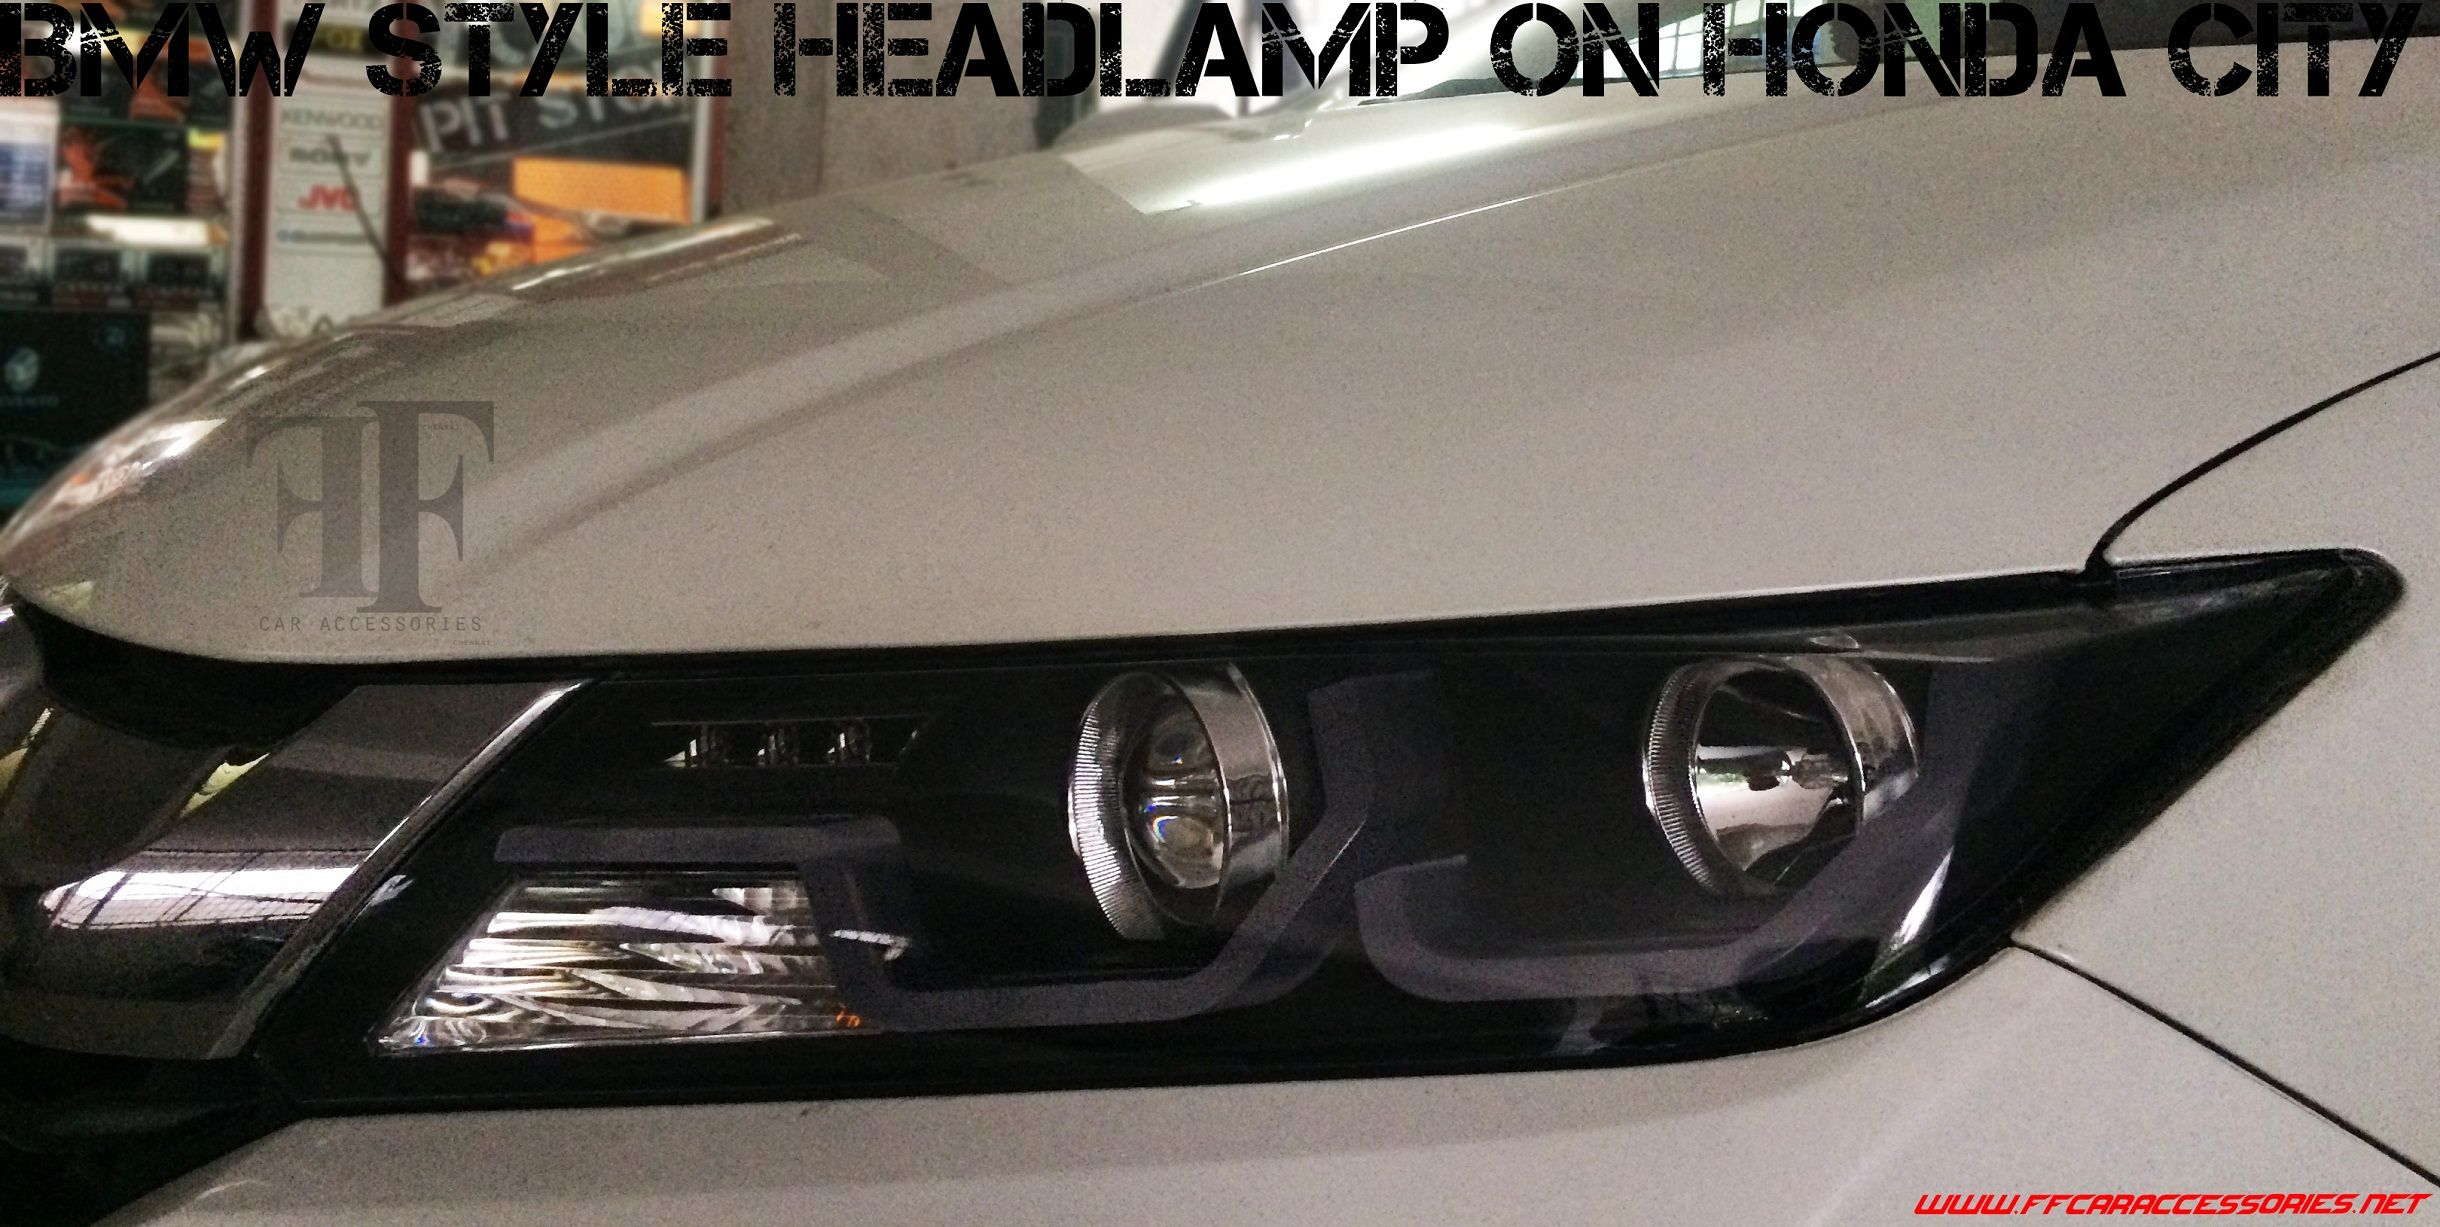 Headlamp Conversion On Honda City With Images Car Accessories Car Seats Honda City